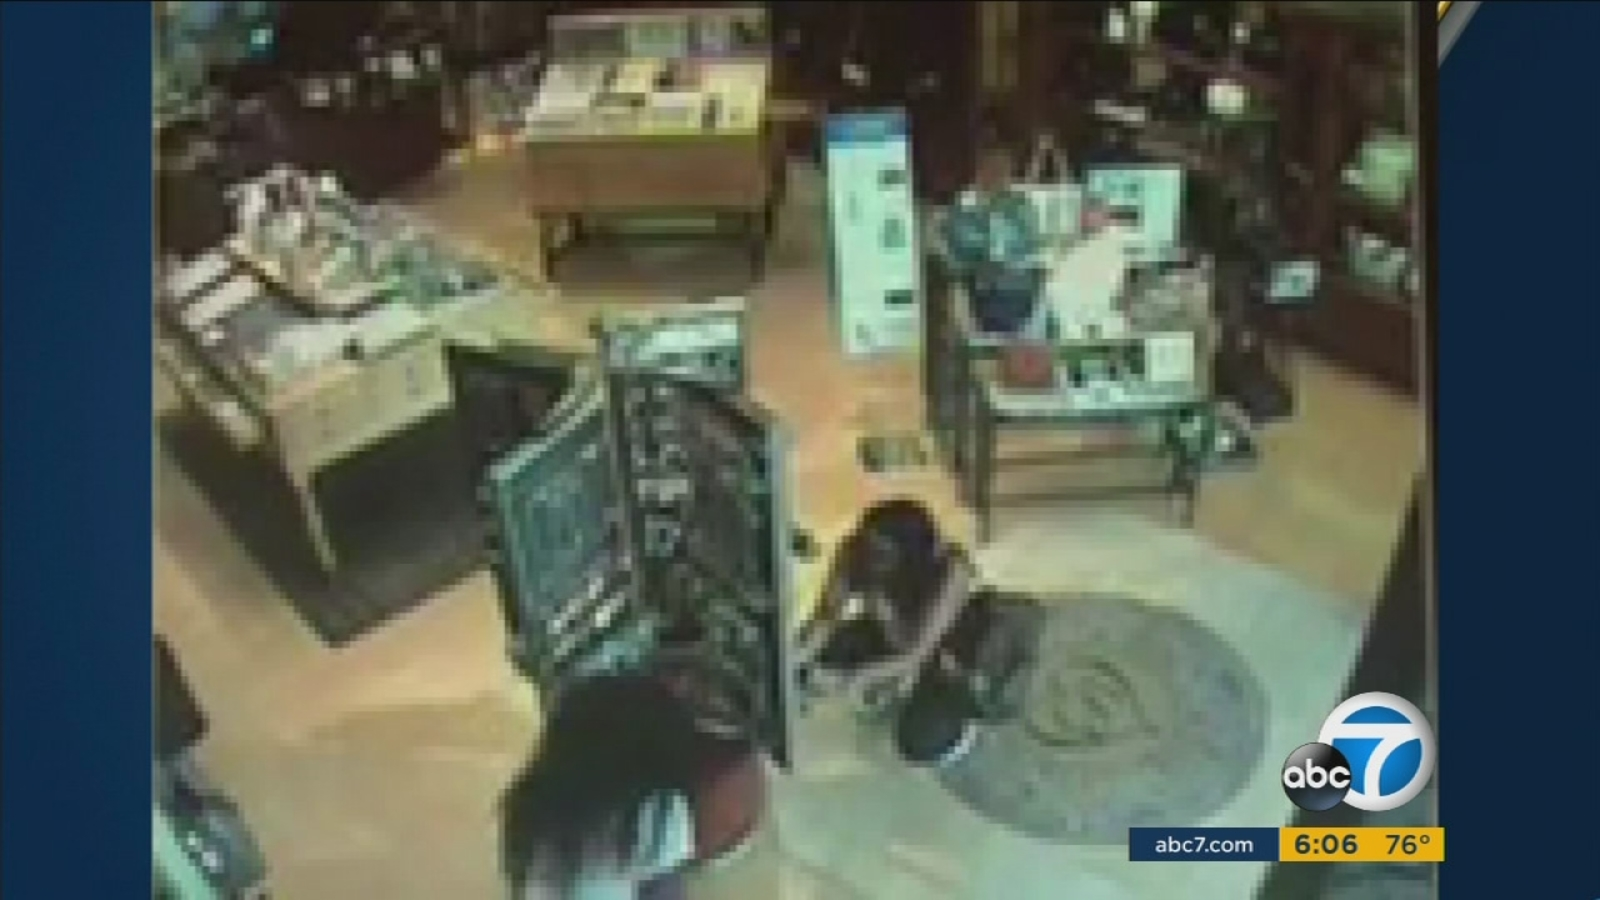 Police Seek Public S Help Finding Irvine Jewelry Theft Suspects Abc7 Los Angeles